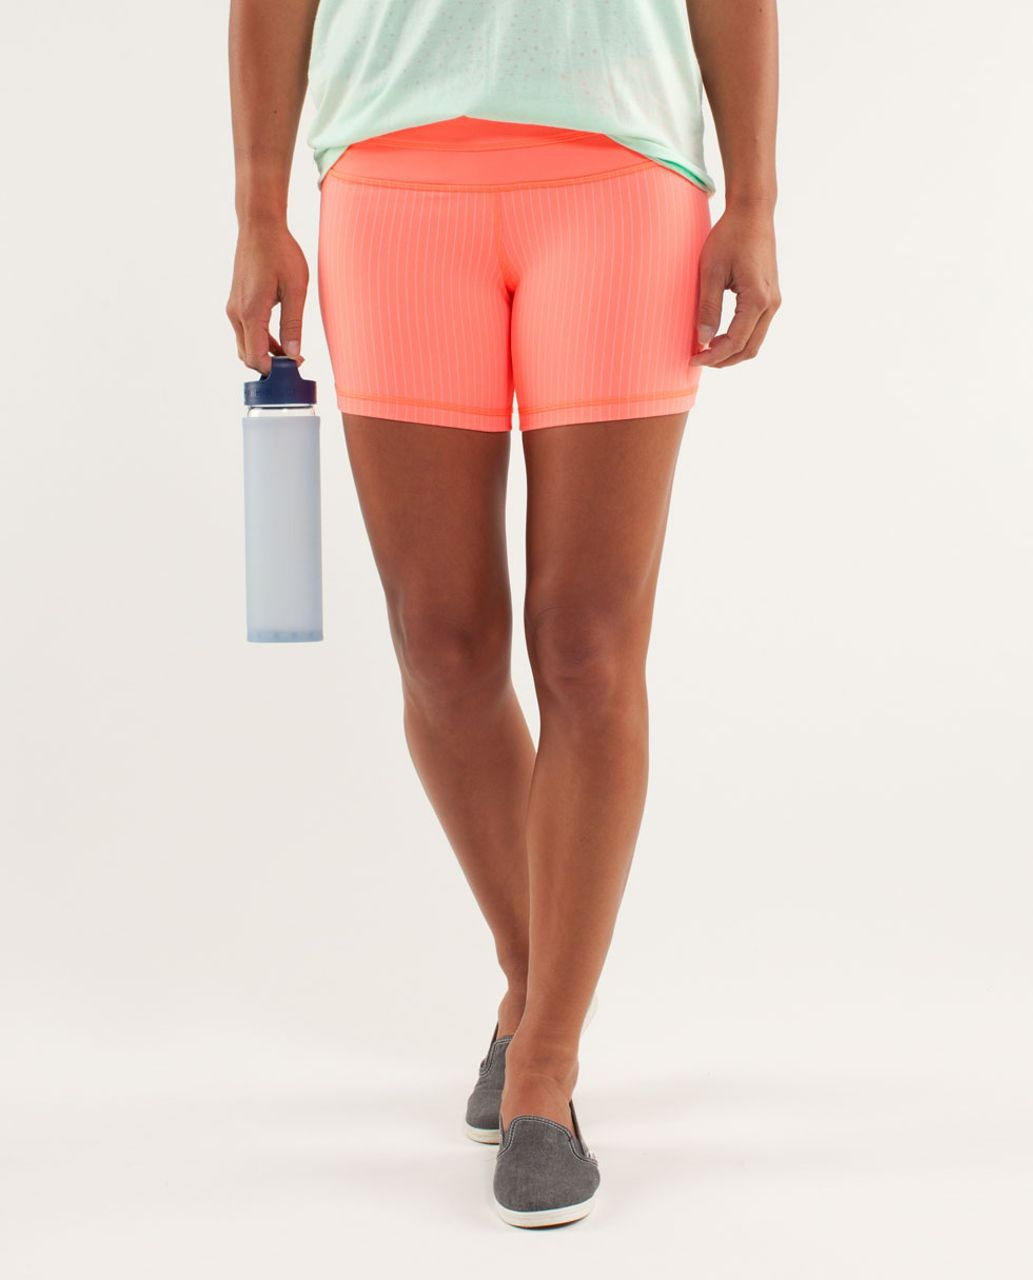 Lululemon Reverse Groove Short (Regular) - Pop Orange / Bleached Coral